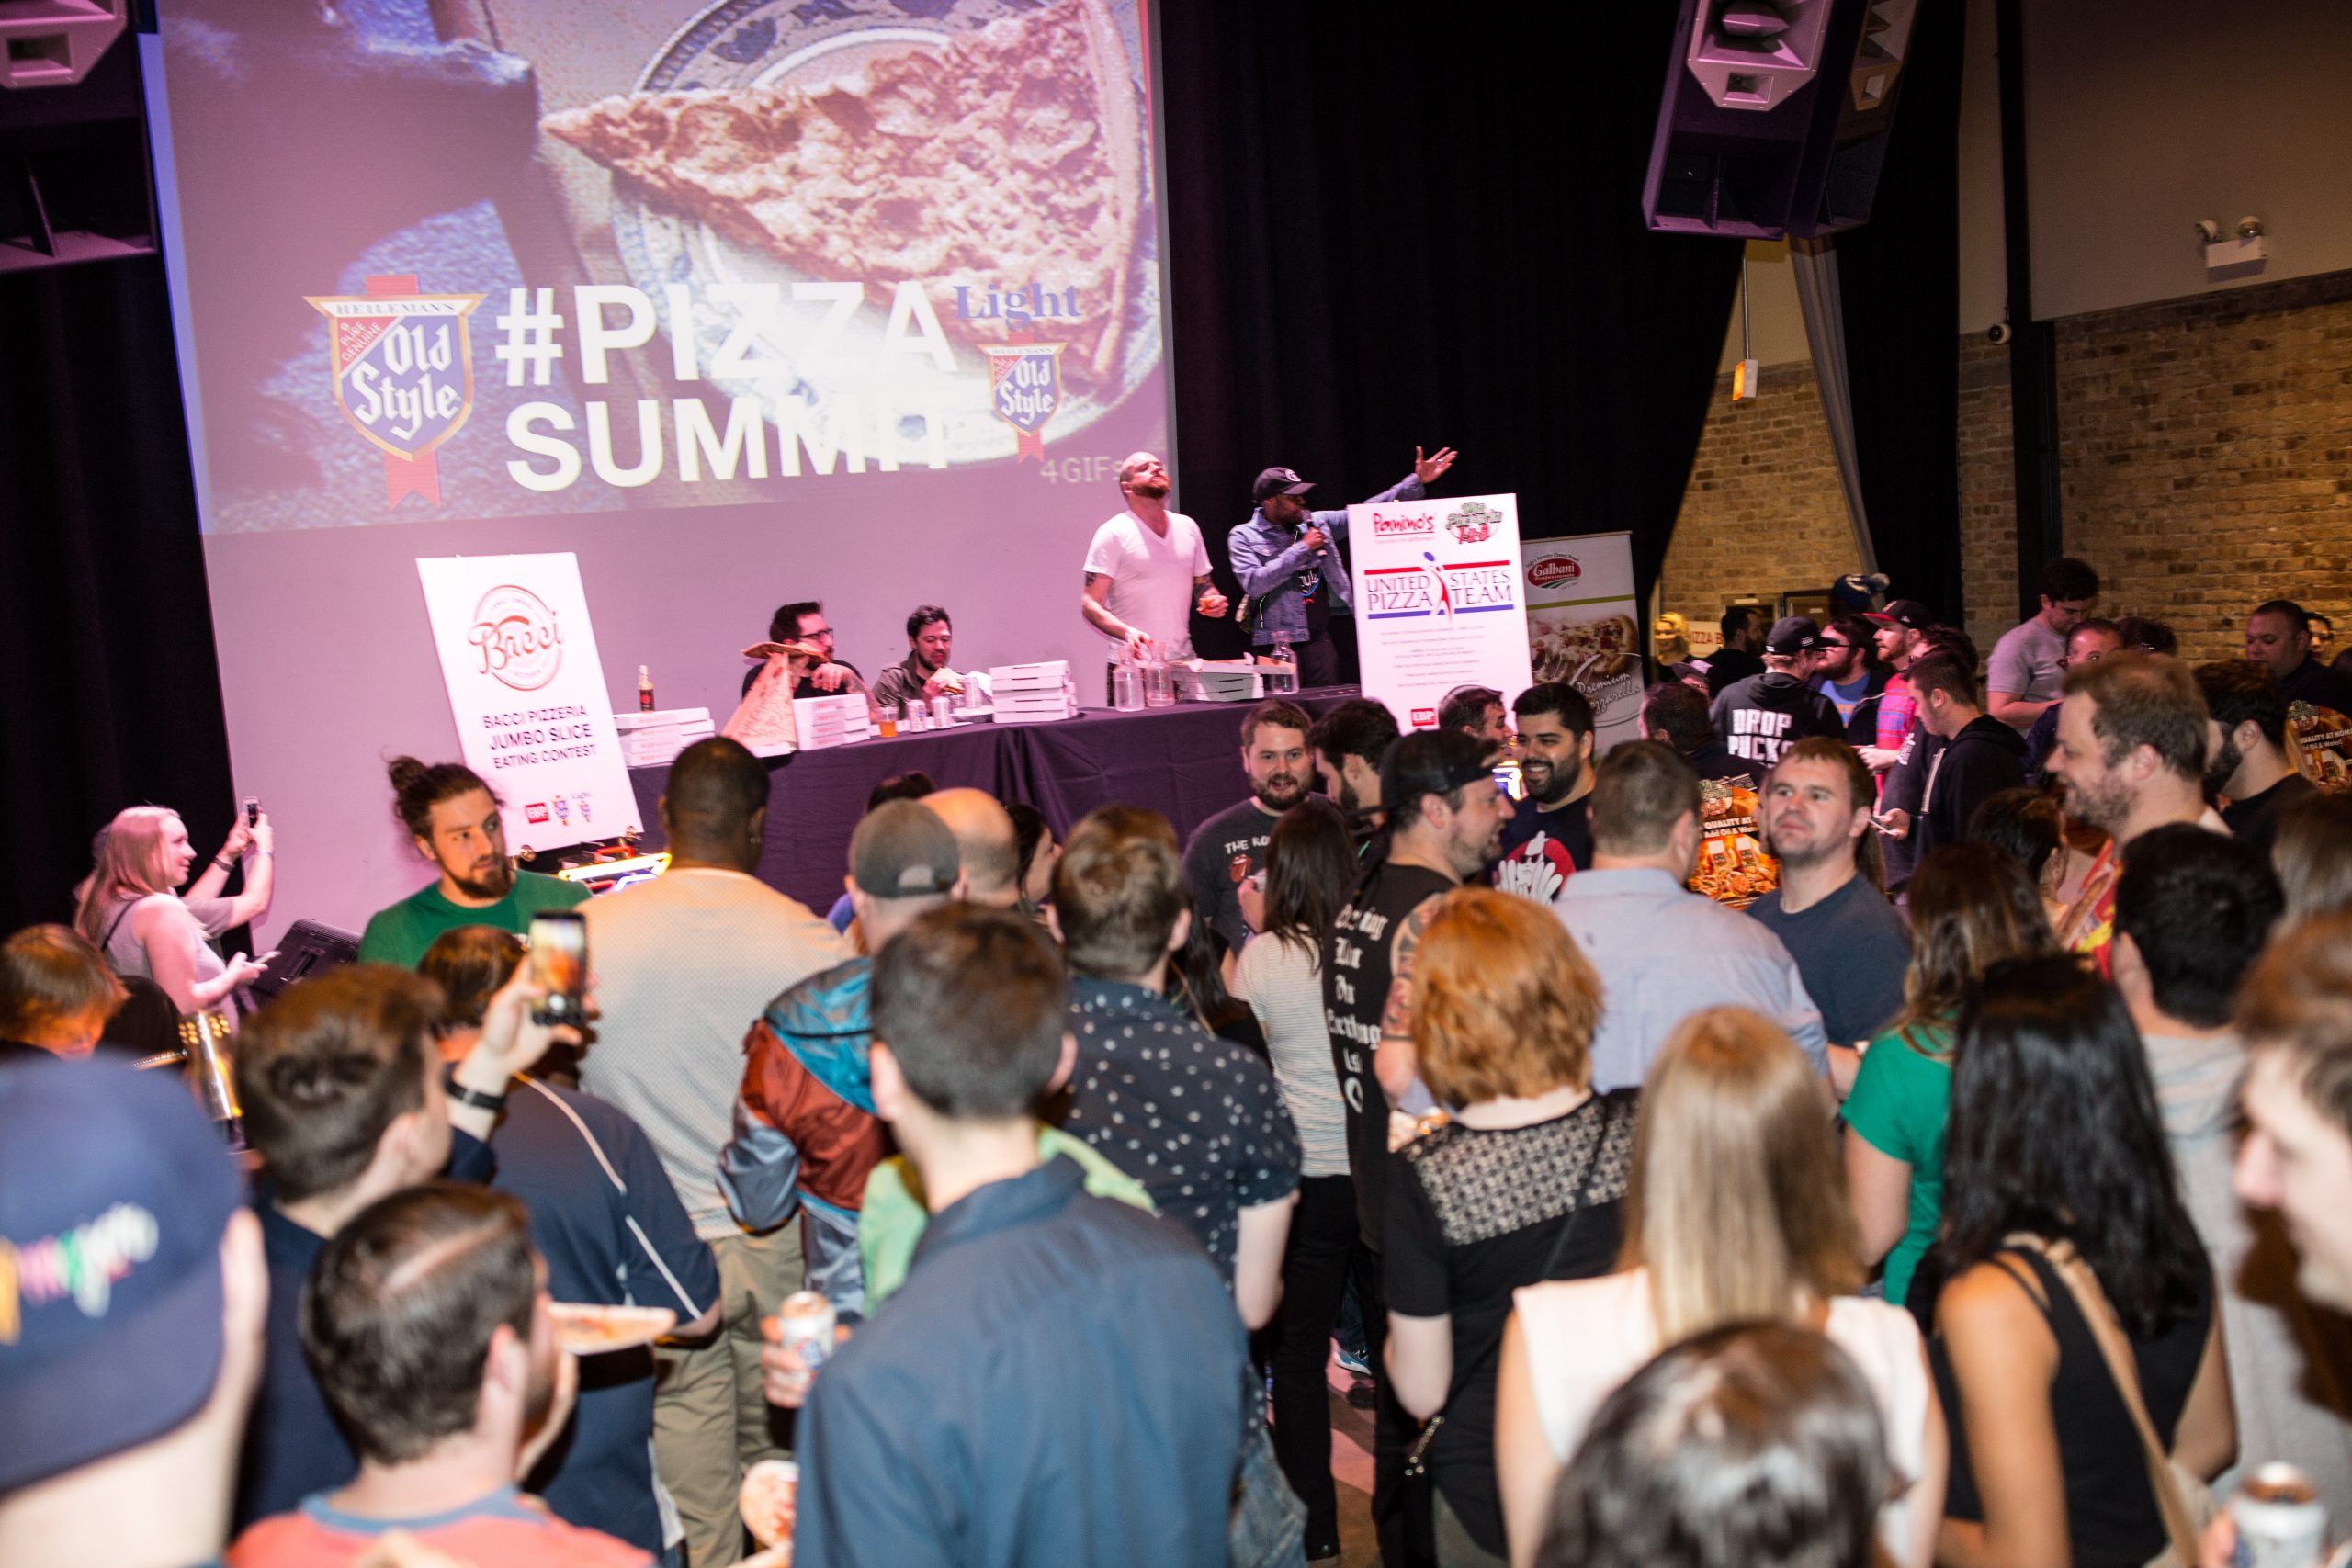 A scene from the 2017 Pizza Summit